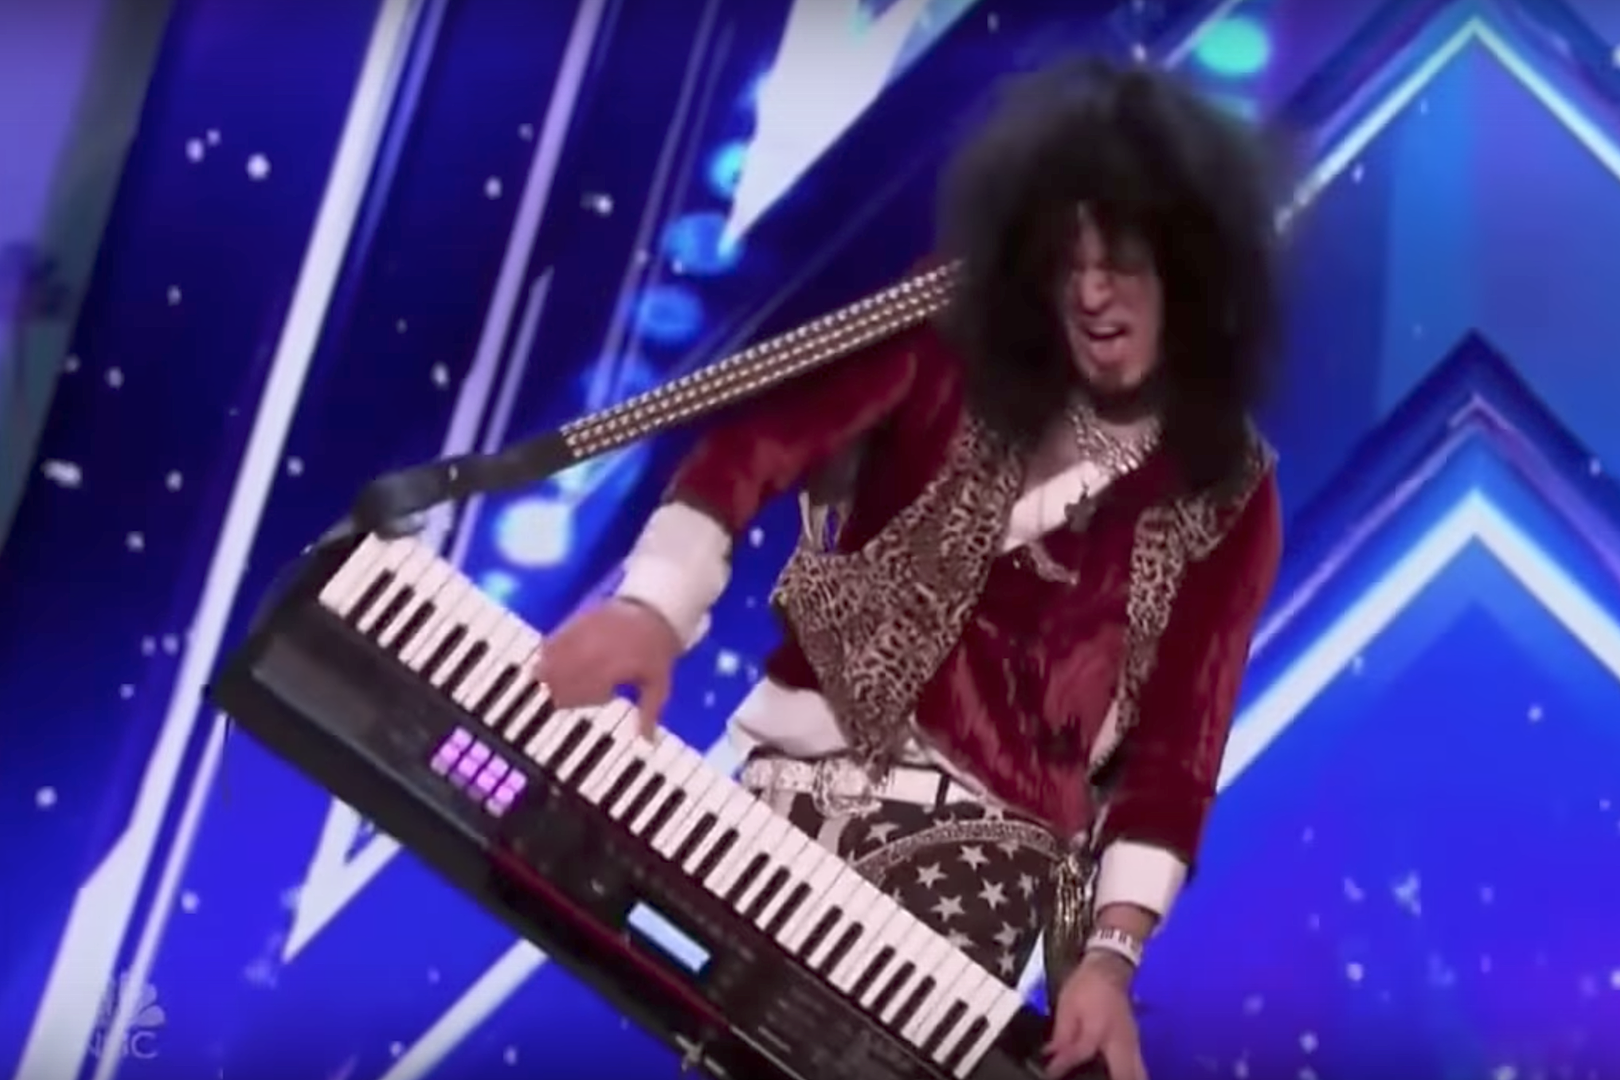 Hair Metal Pirate Covers Joan Jett + Shreds Keytar for